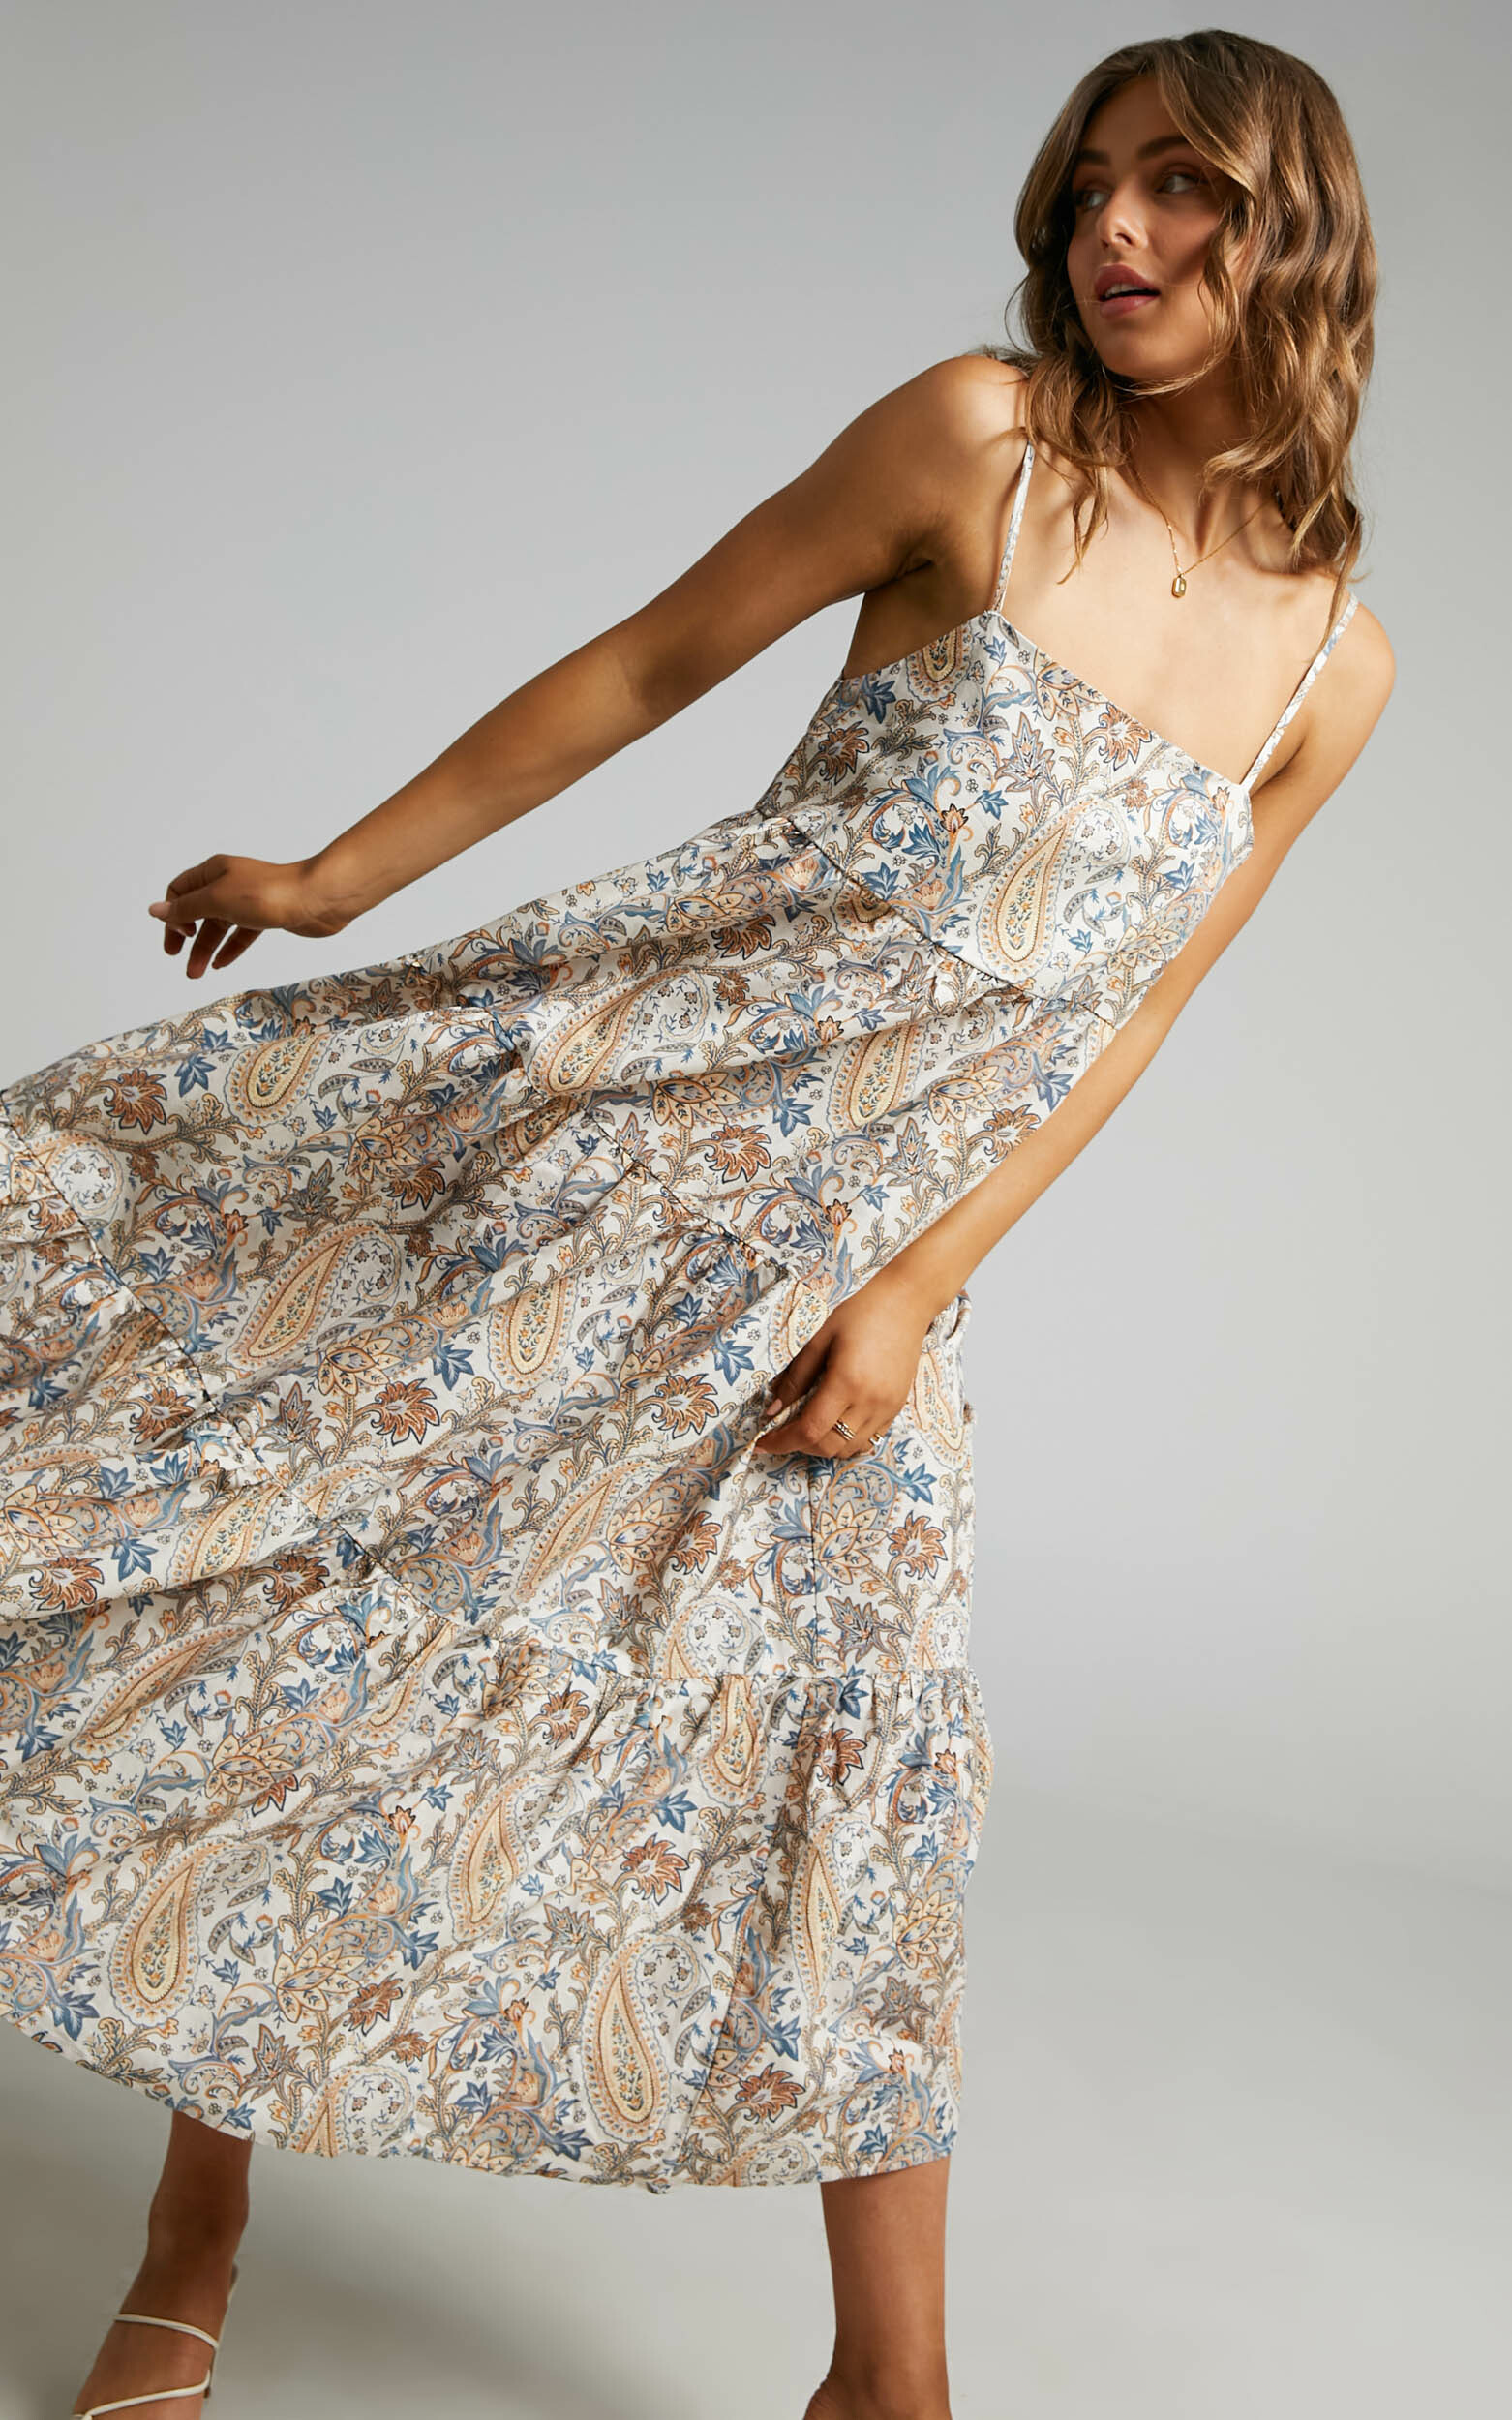 Charlie Holiday - Isabella Maxi Dress in Paisley - L, MLT1, hi-res image number null